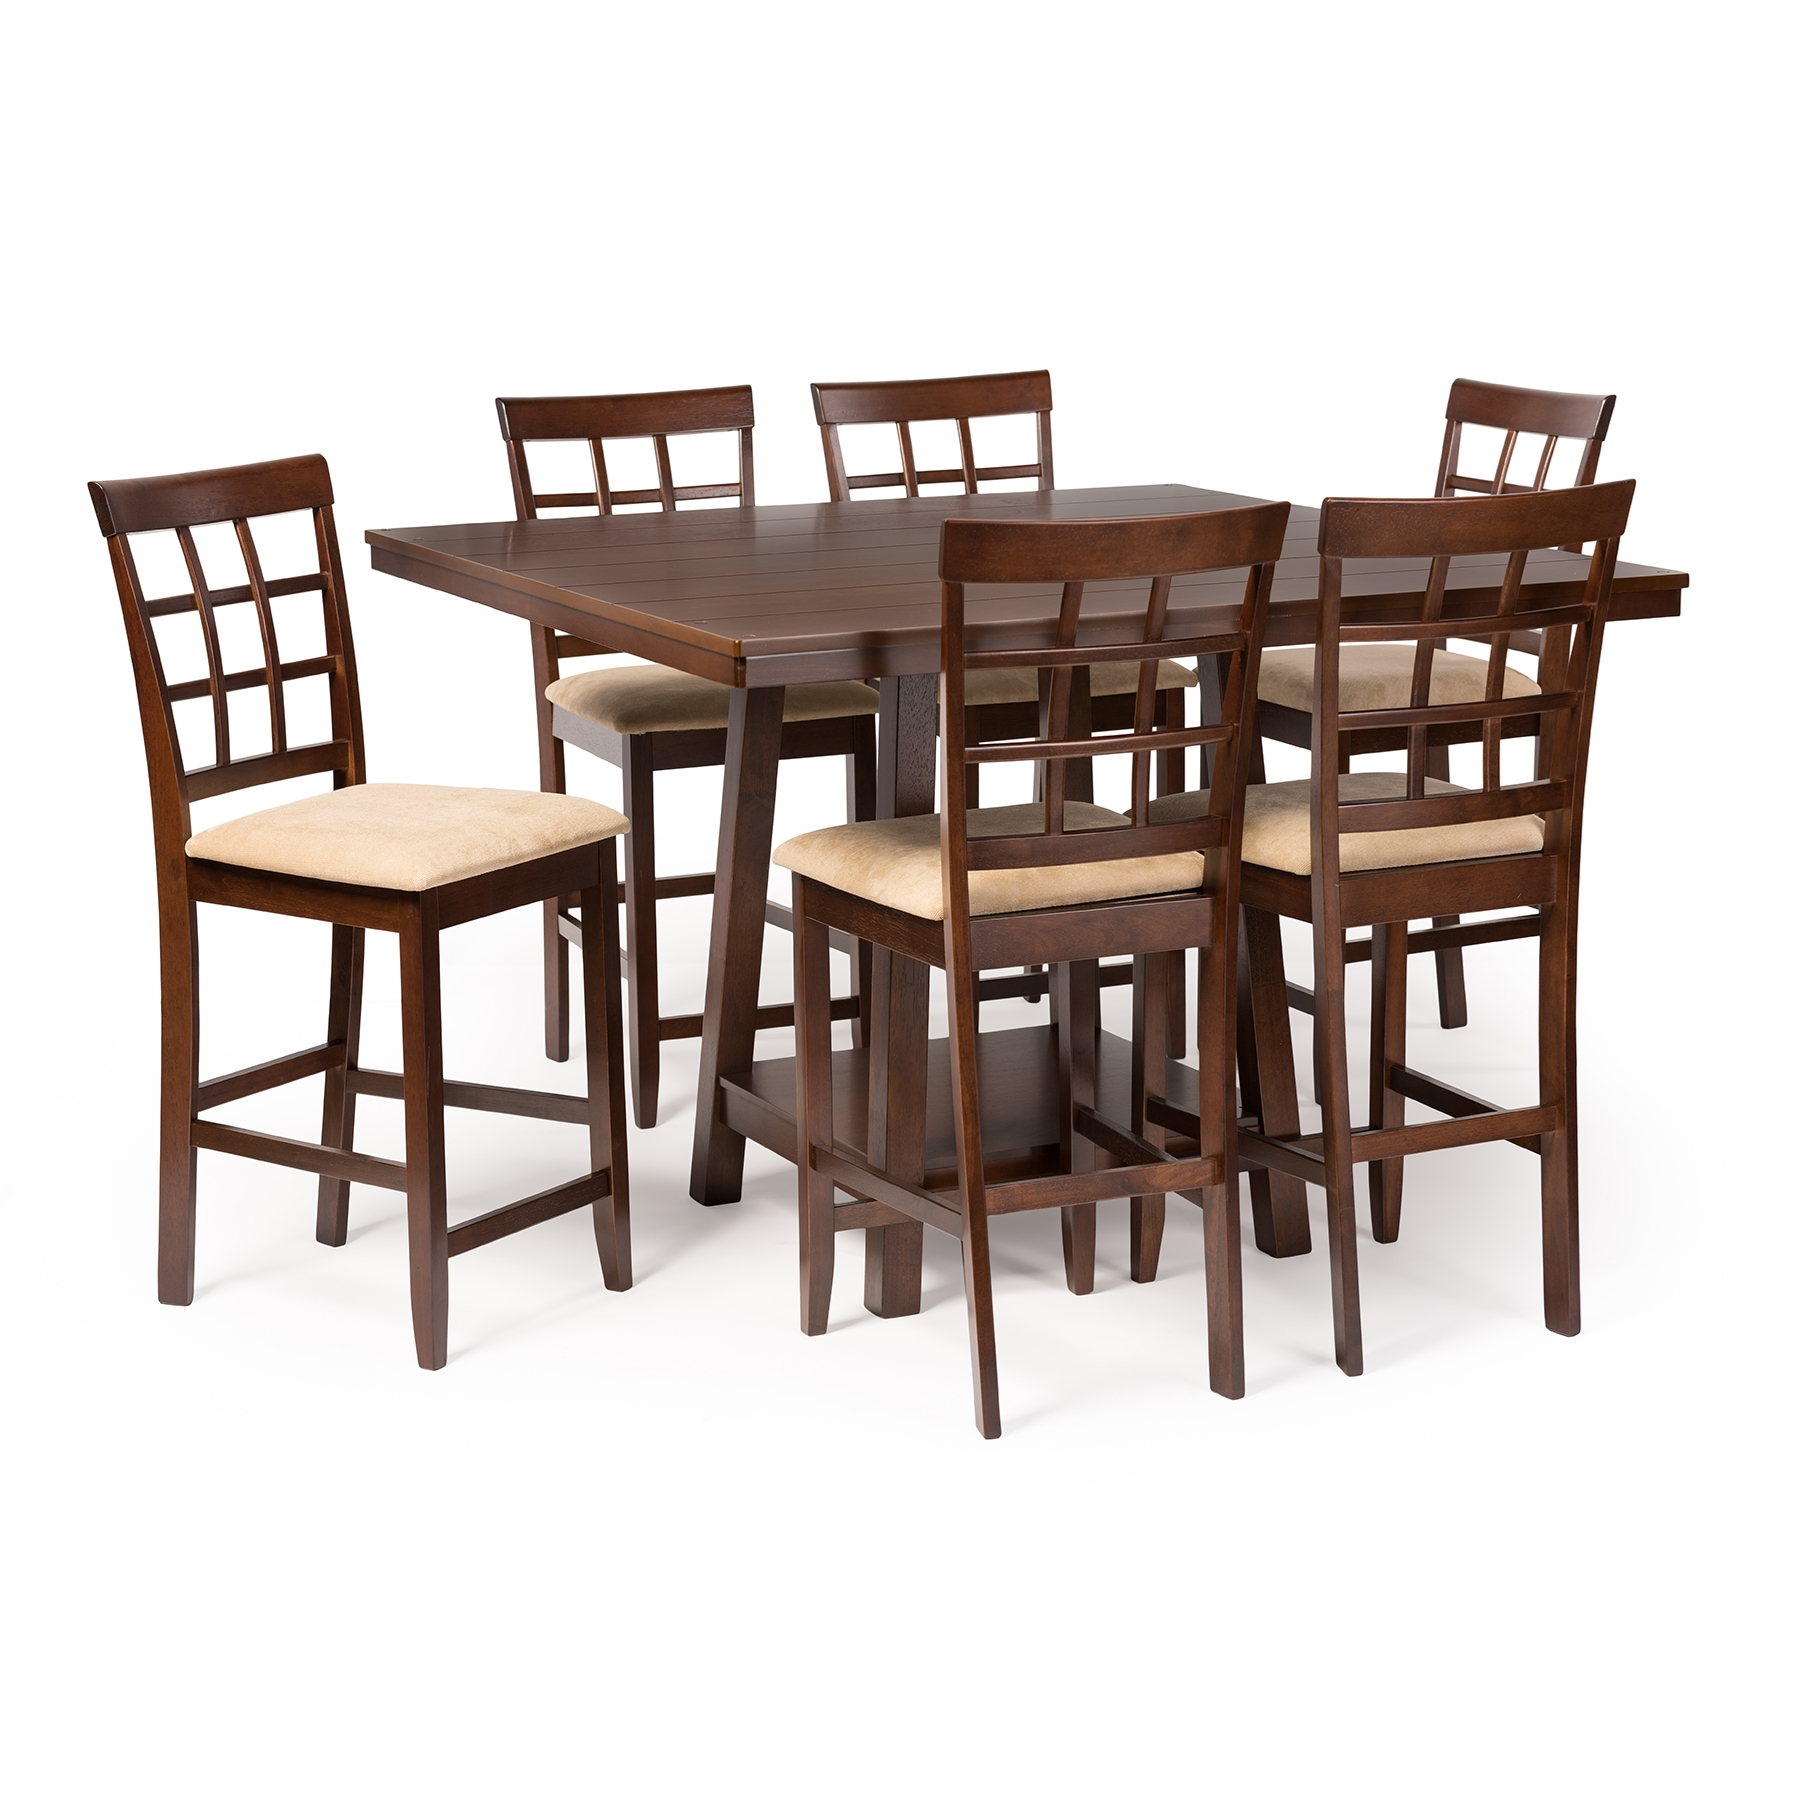 Baxton Studio Katelyn Modern Pub Table Set   7 Piece Modern Dining Set